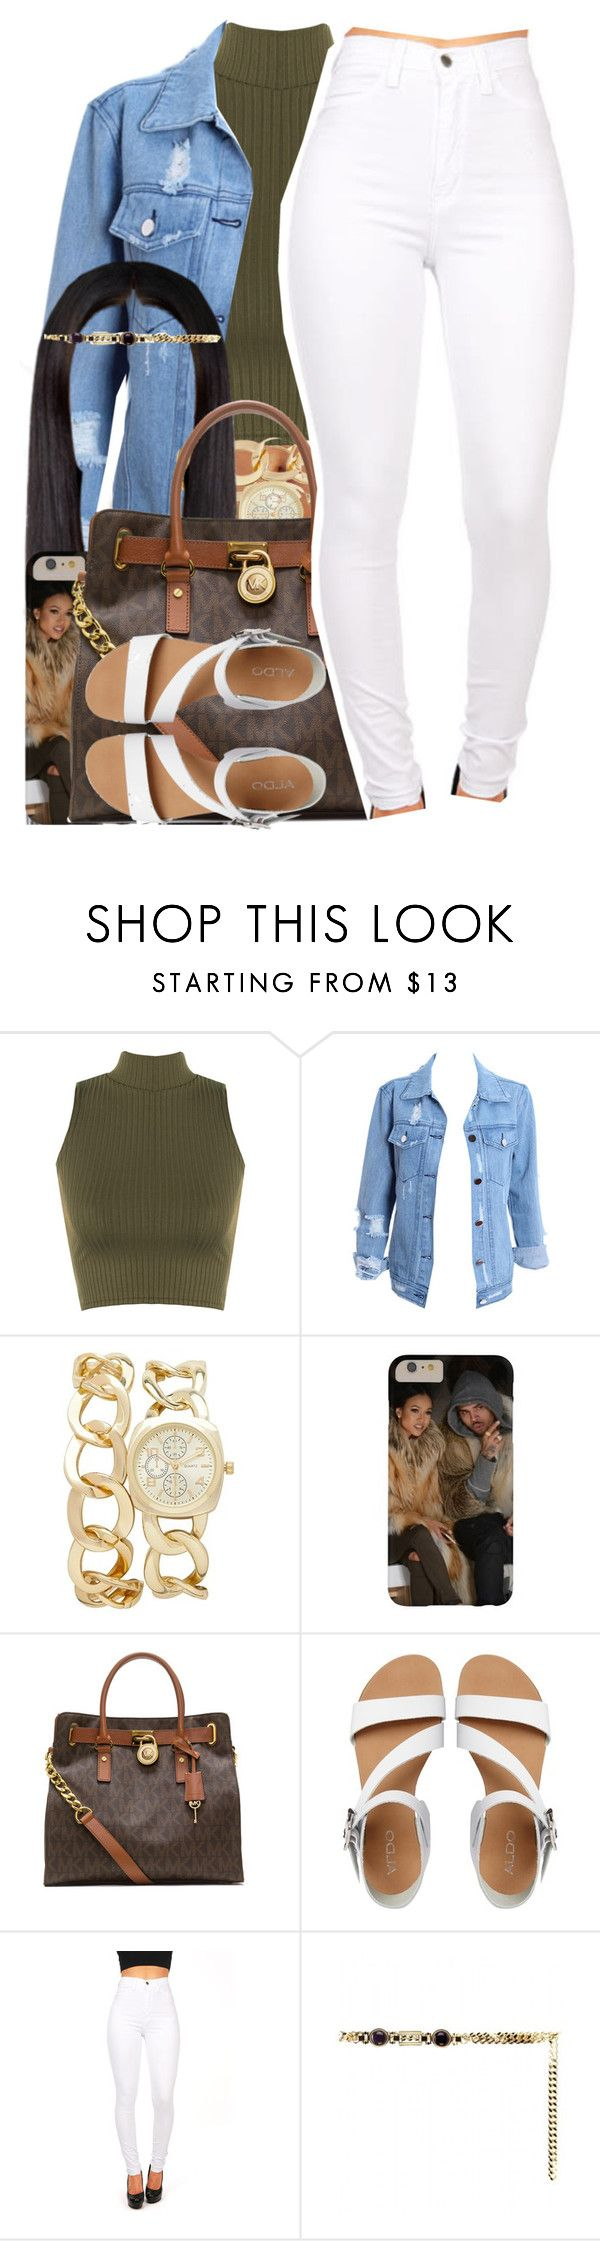 """Chris Brown / Back To Sleep"" by nasiaamiraaa ❤ liked on Polyvore featuring WearAll, Forever New, MICHAEL Michael Kors, ALDO, Alessandra Rich and NanaOutfits"